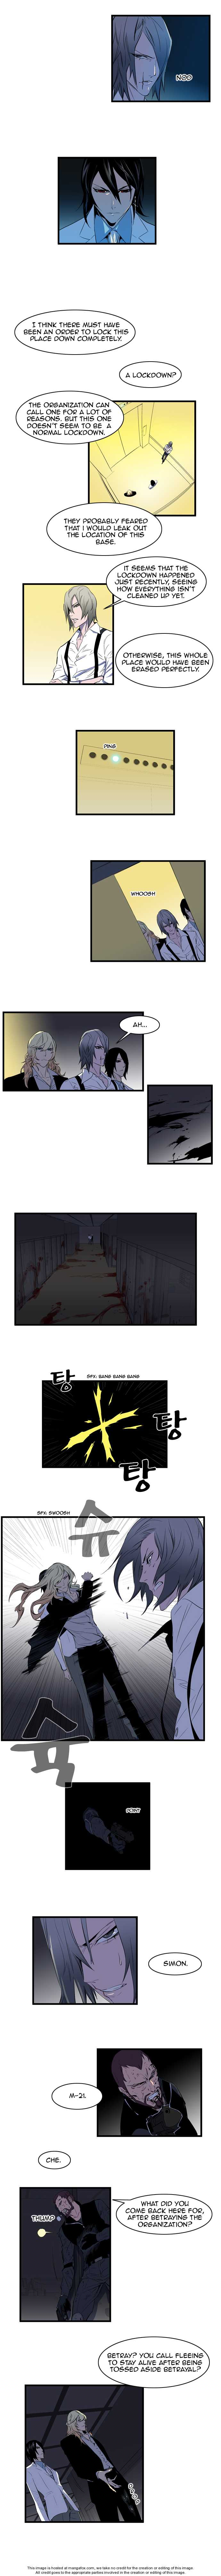 Noblesse 86 Page 2